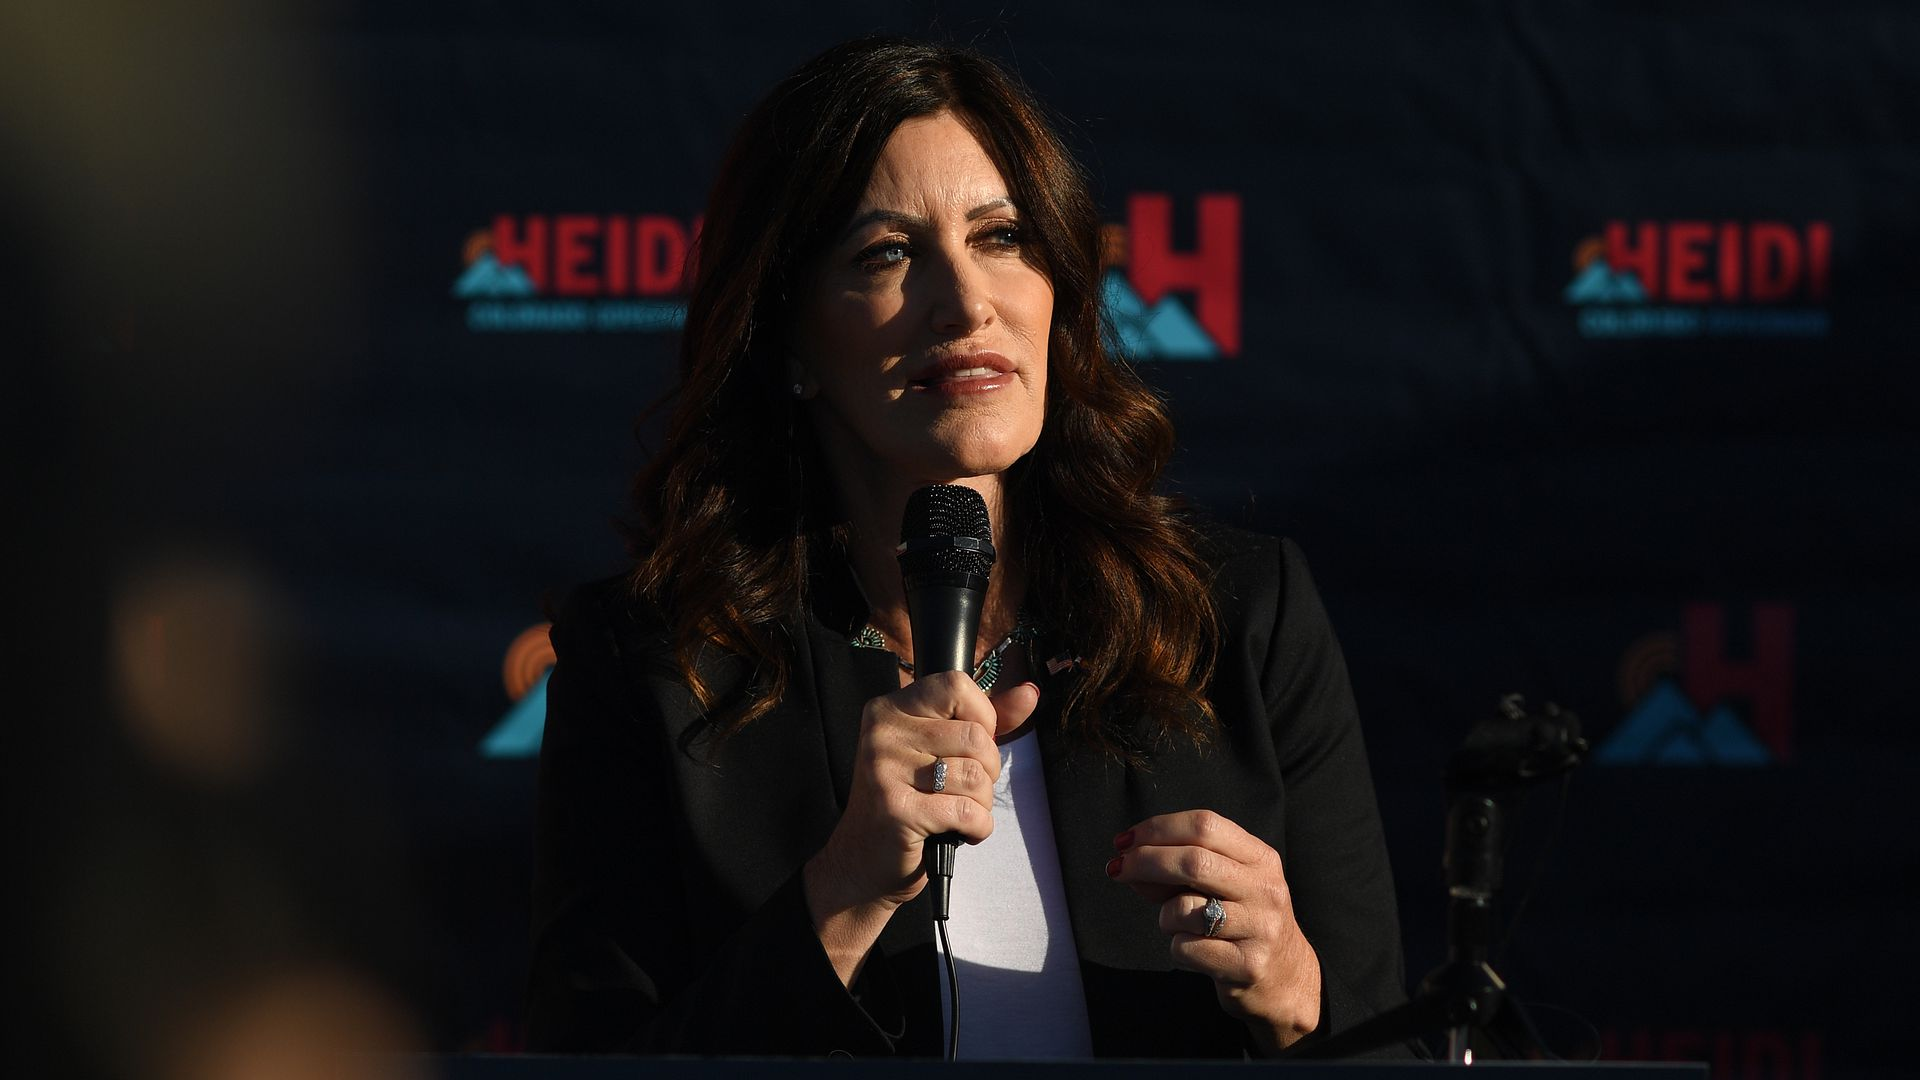 Heidi Ganahl announcing her campaign for governor in Monument. Photo: RJ Sangosti/The Denver Post via Getty Images